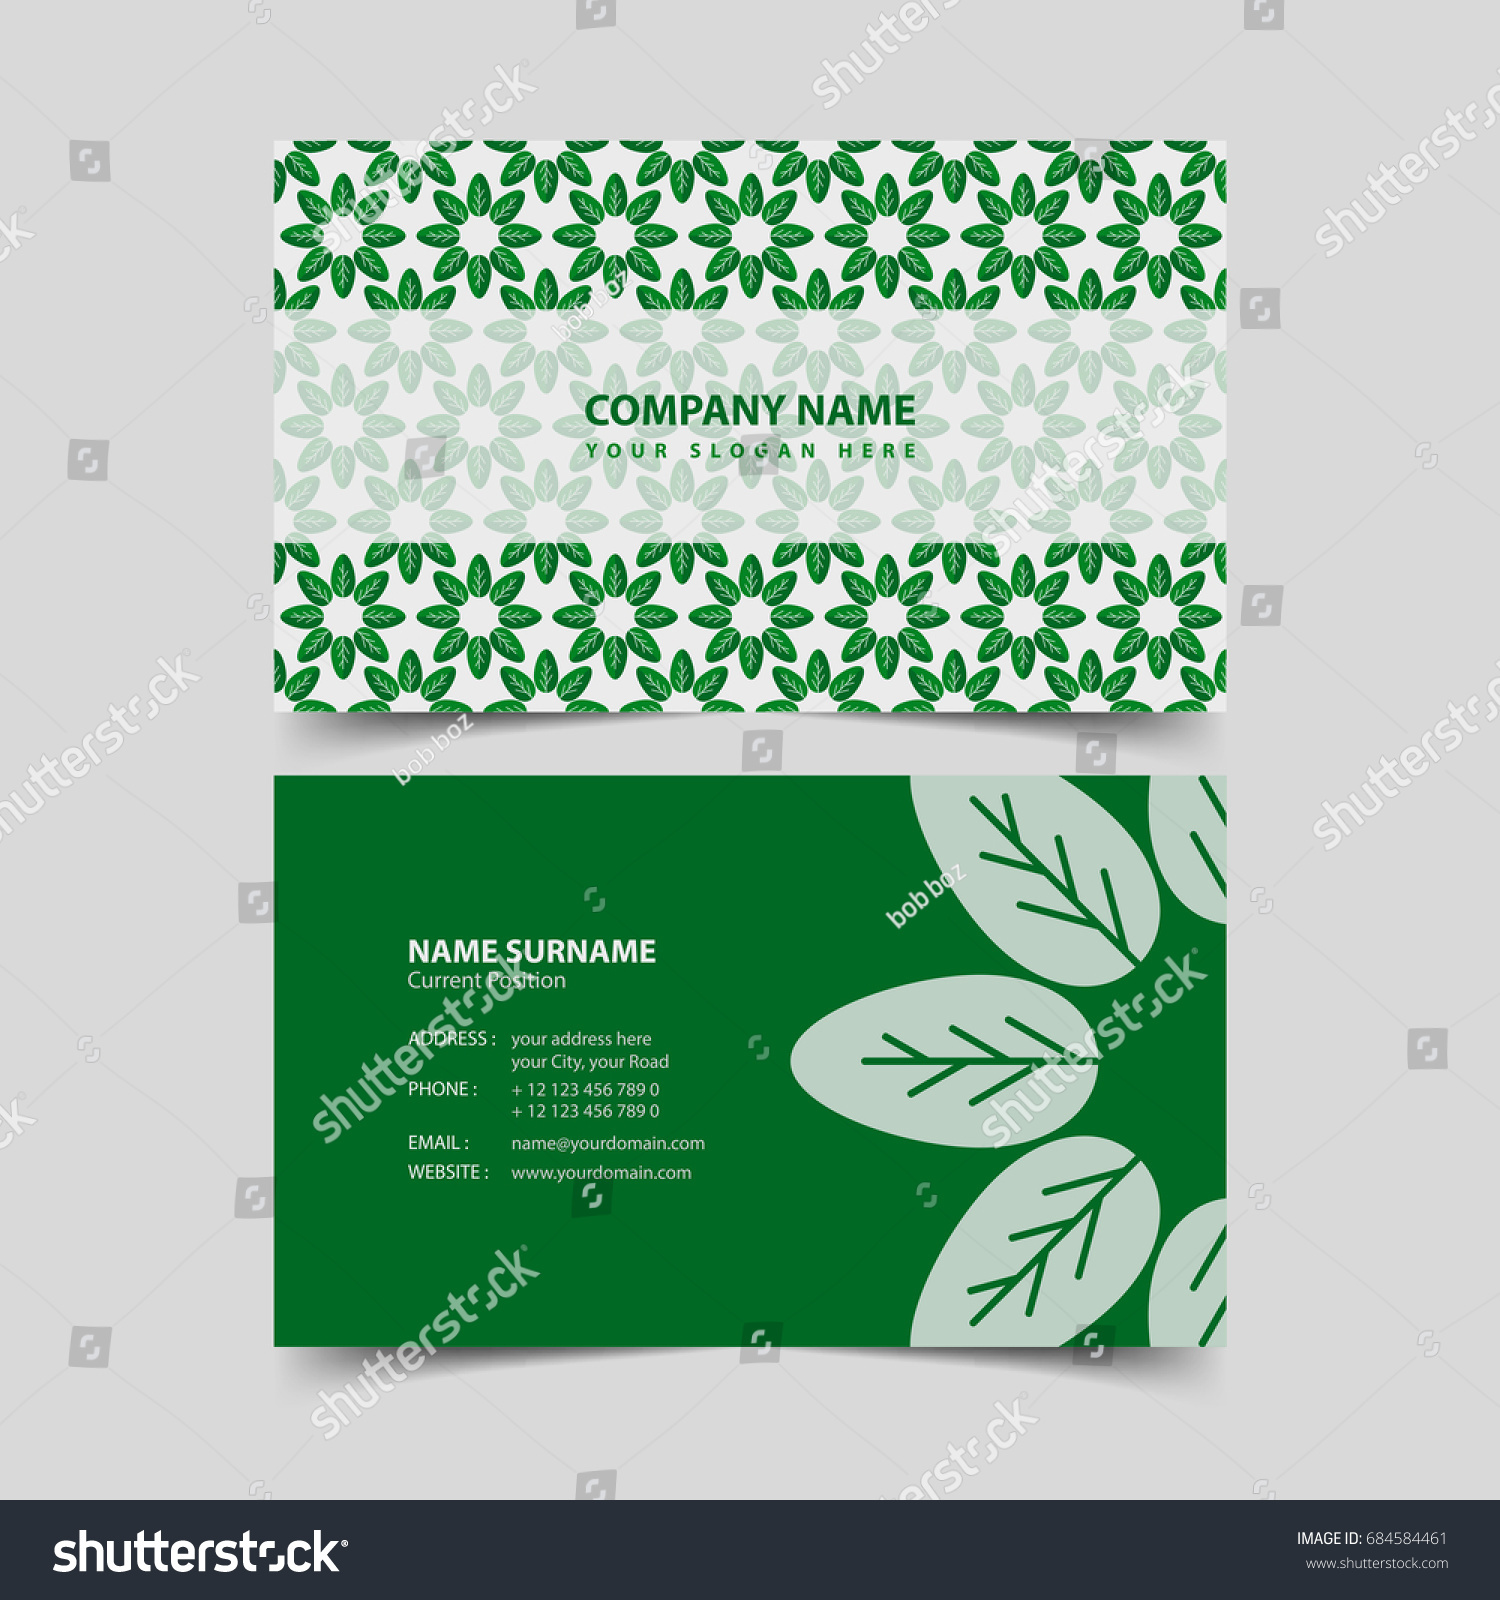 Eco Friendly Business Card Design Template Stock Vector 684584461 ...